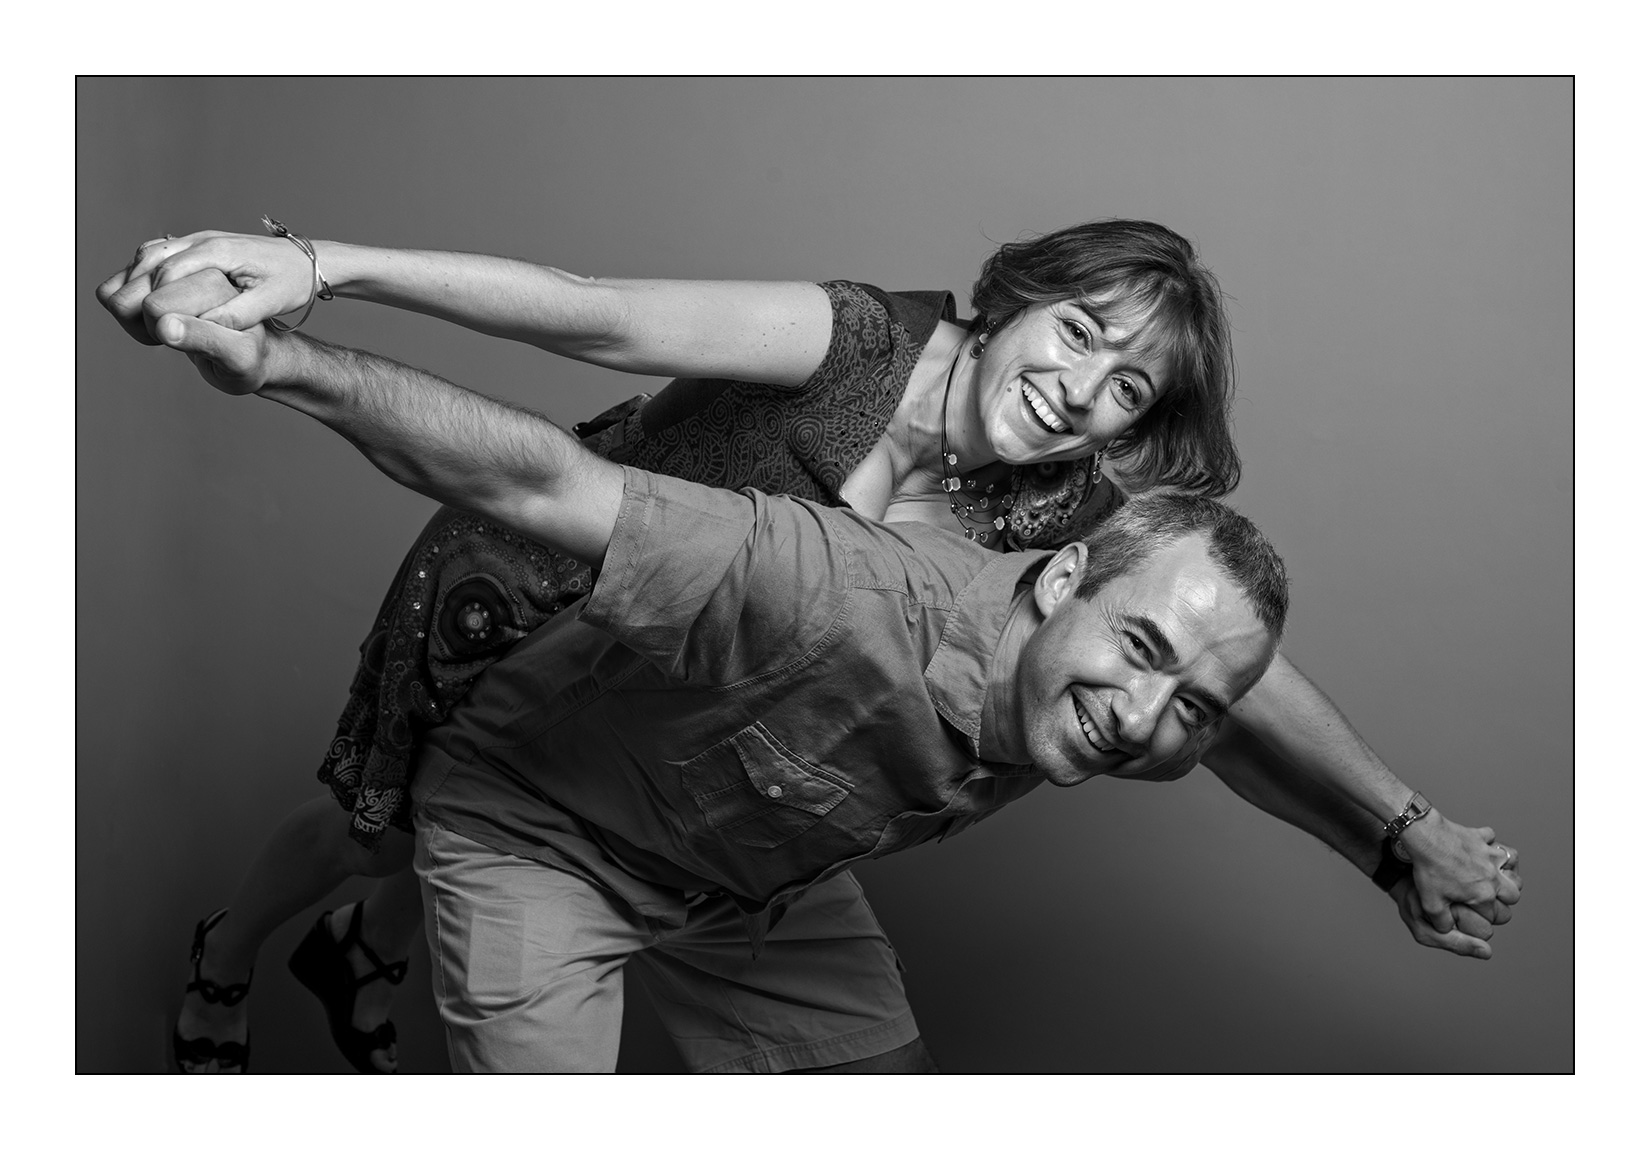 couple-seance-studio-photo-noir-blanc-sourire-fun-original